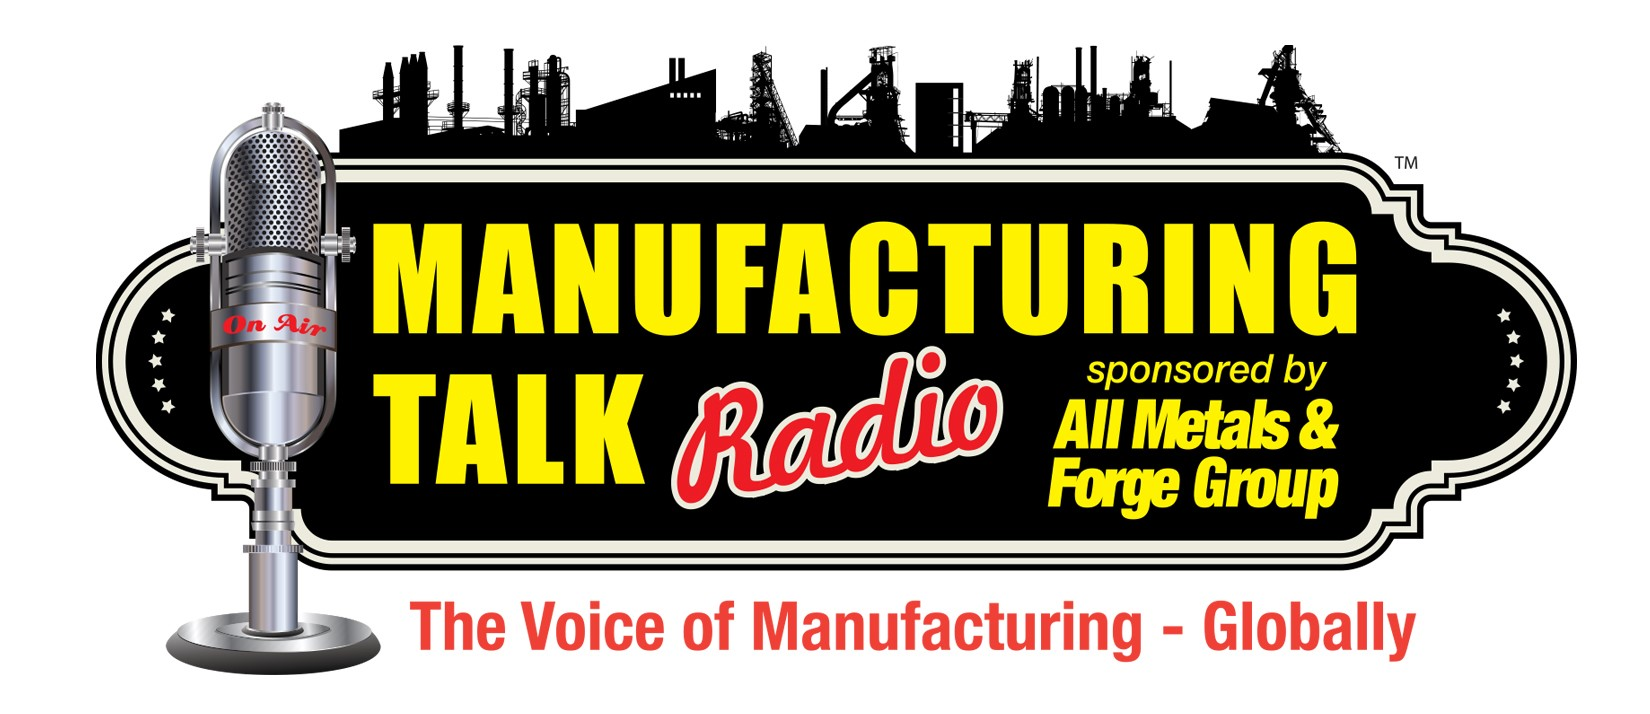 Manufacturing Talk Radio Host Lew Weiss and Tim Grady Explore Industrial Outlook for Manufacturing in 2020